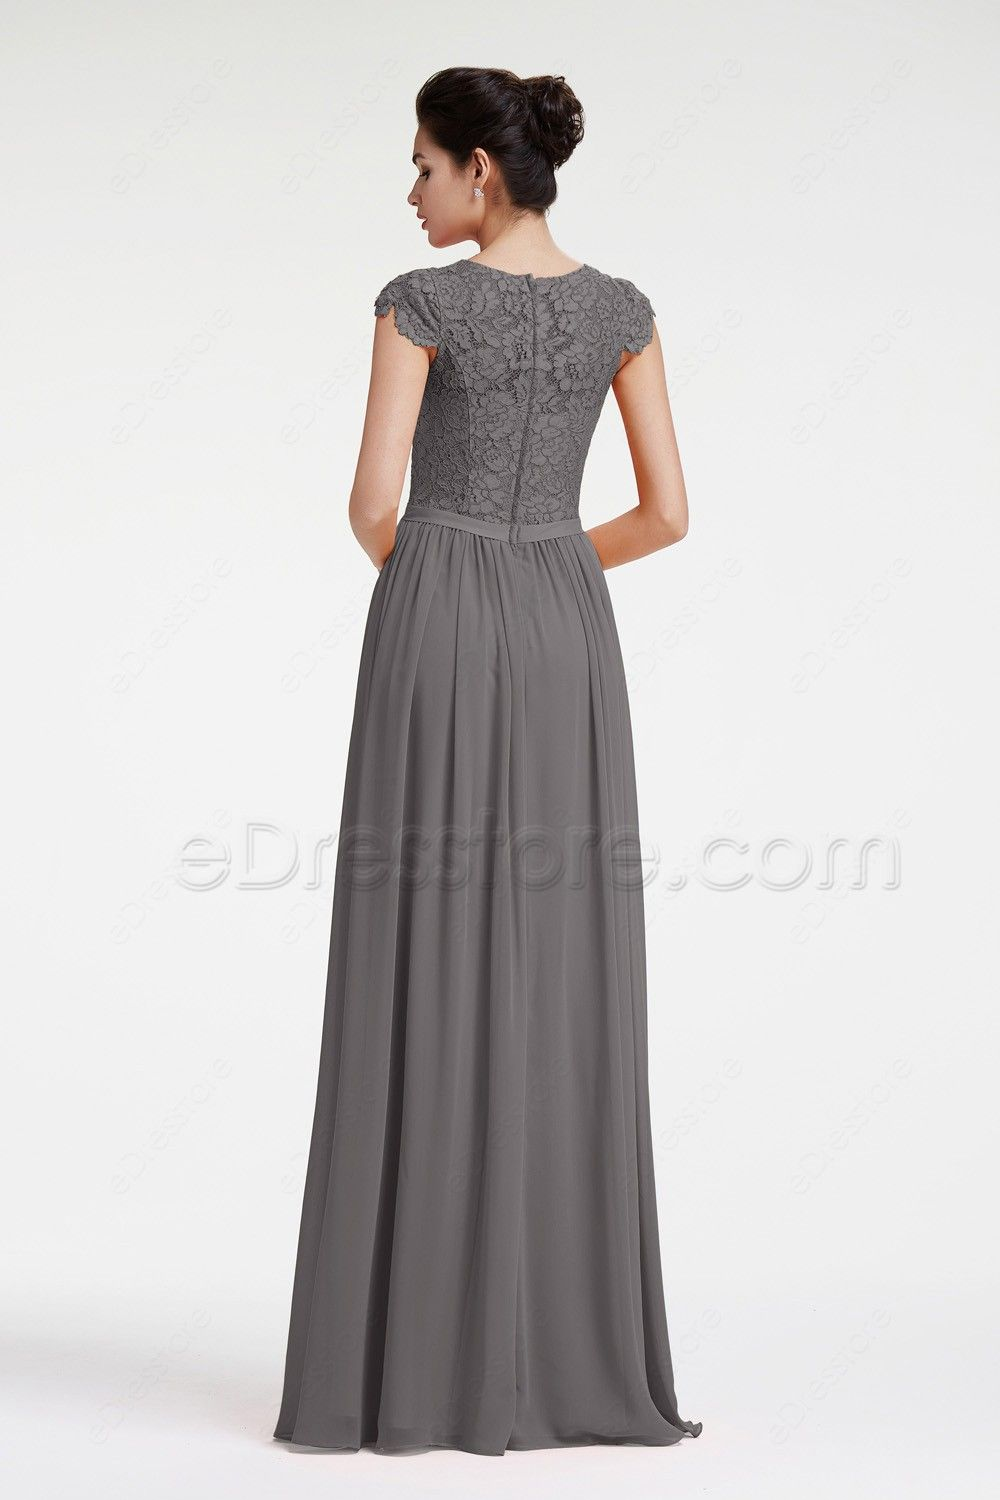 7ec09fdd805 The charcoal grey bridesmaid dress is made of chiffon and lace fabric